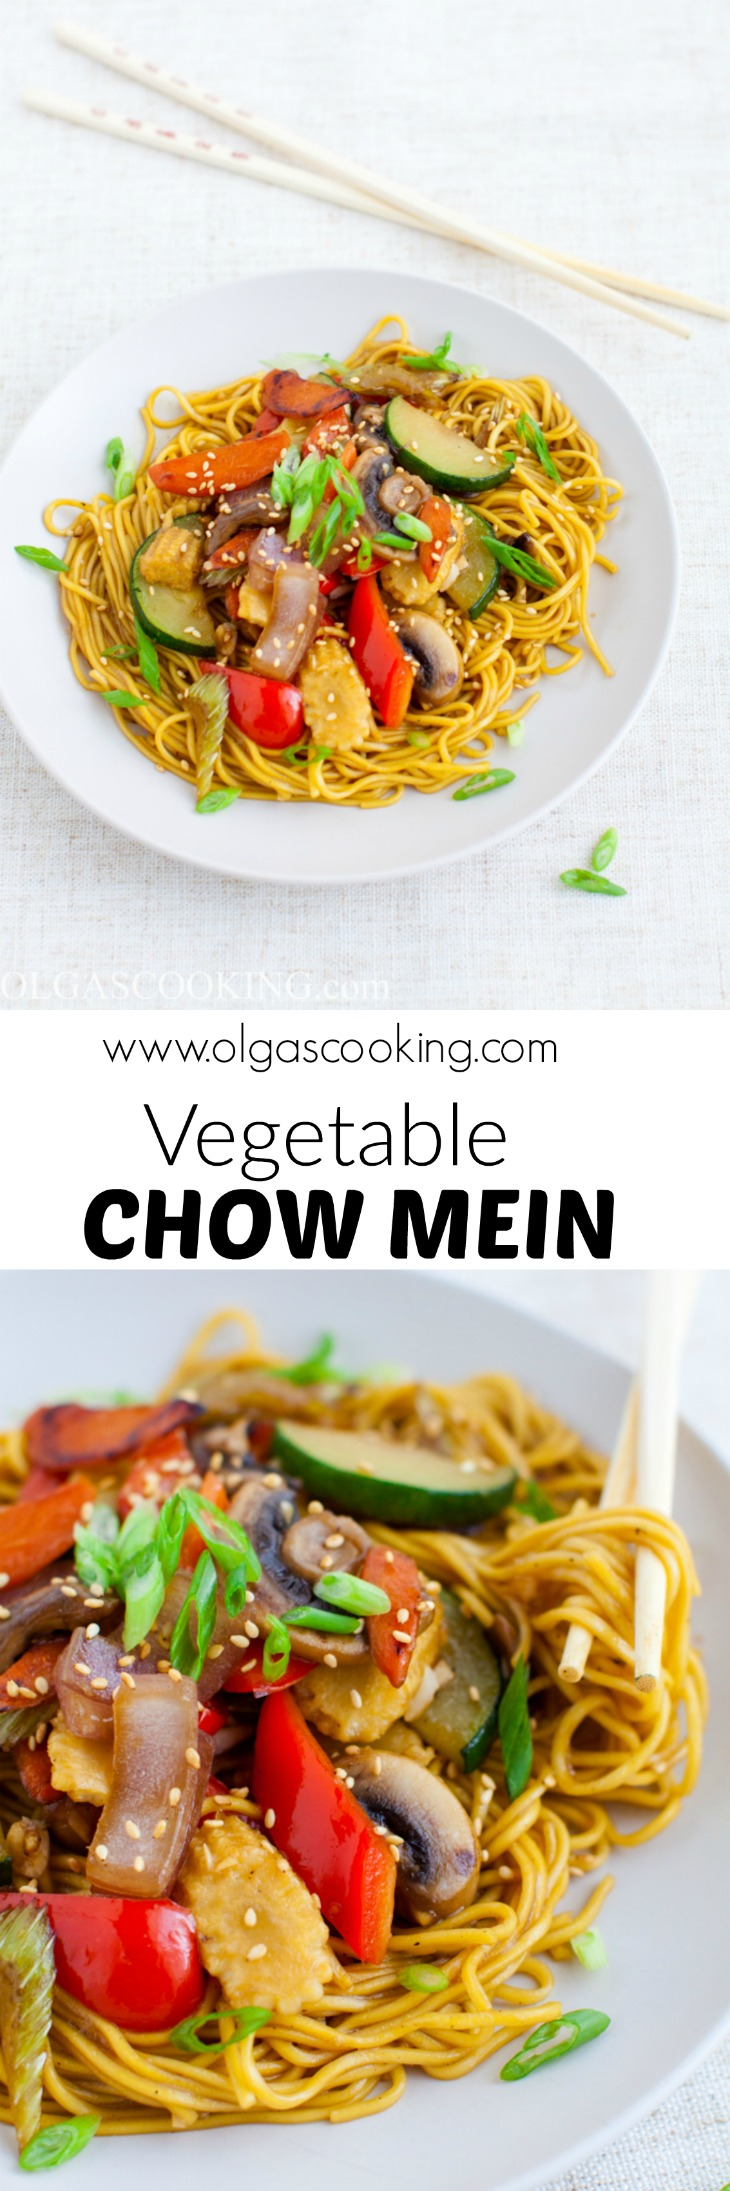 quick-and-easy-chow-mein-recipe